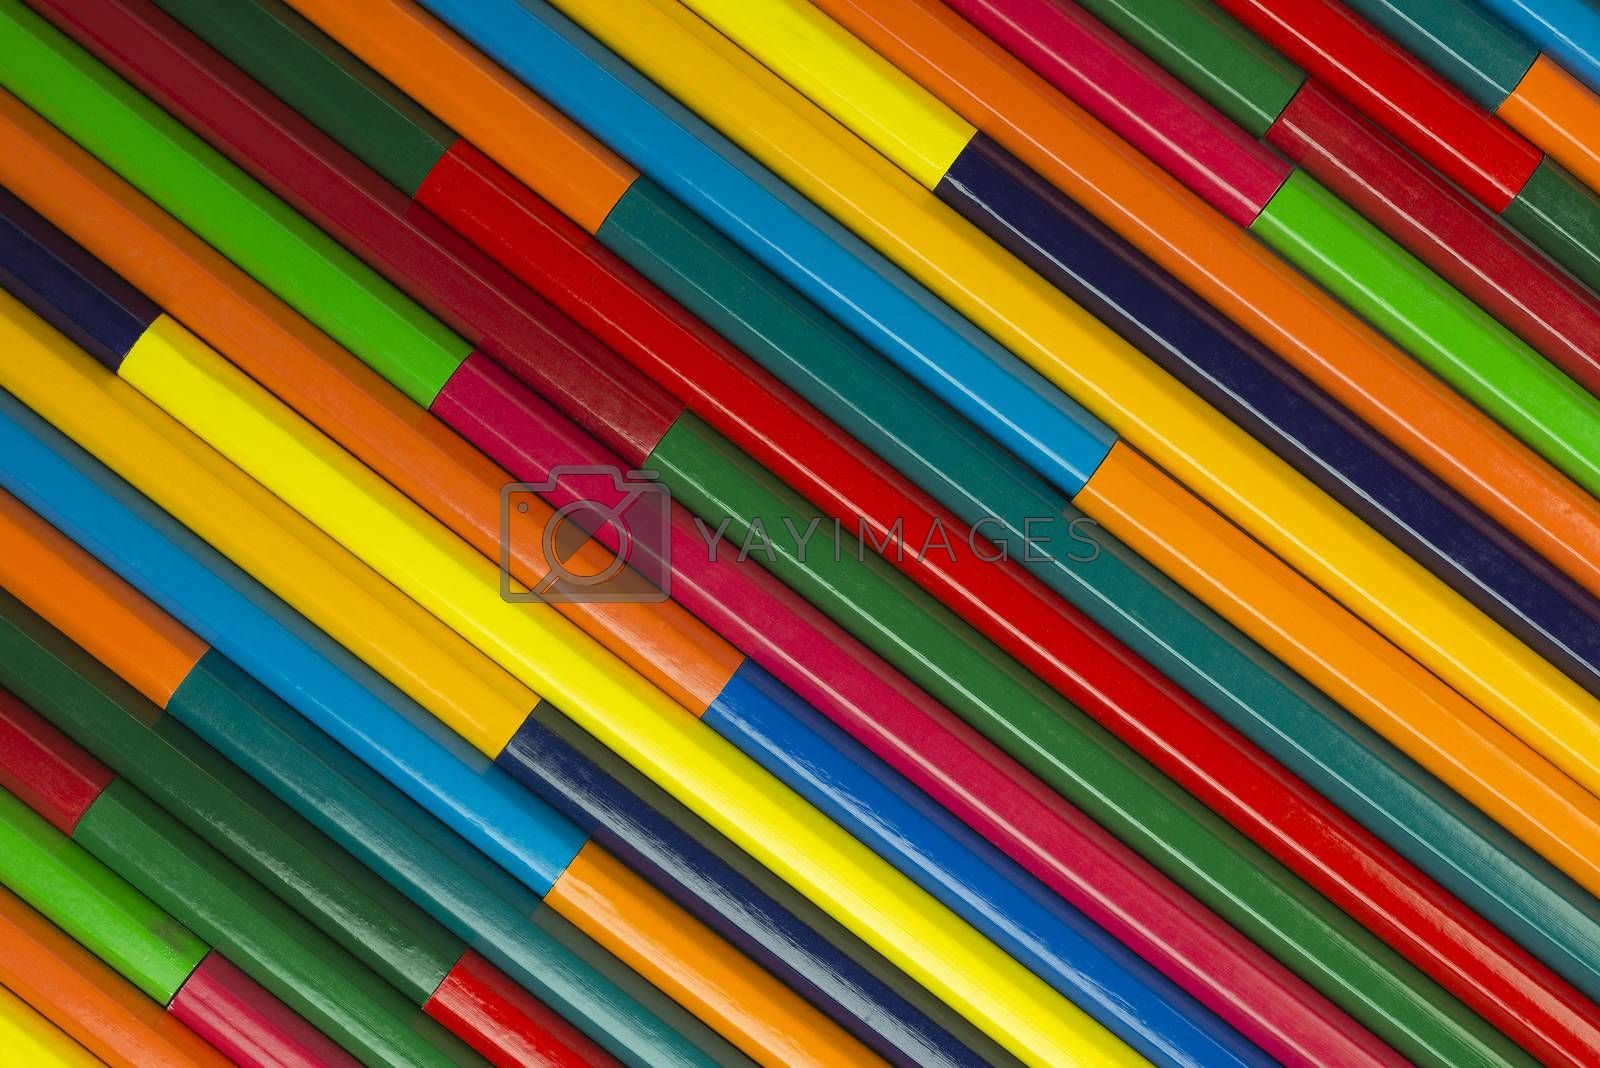 Collection of coloured pencils in a diagonal complementary colors set up as background picture